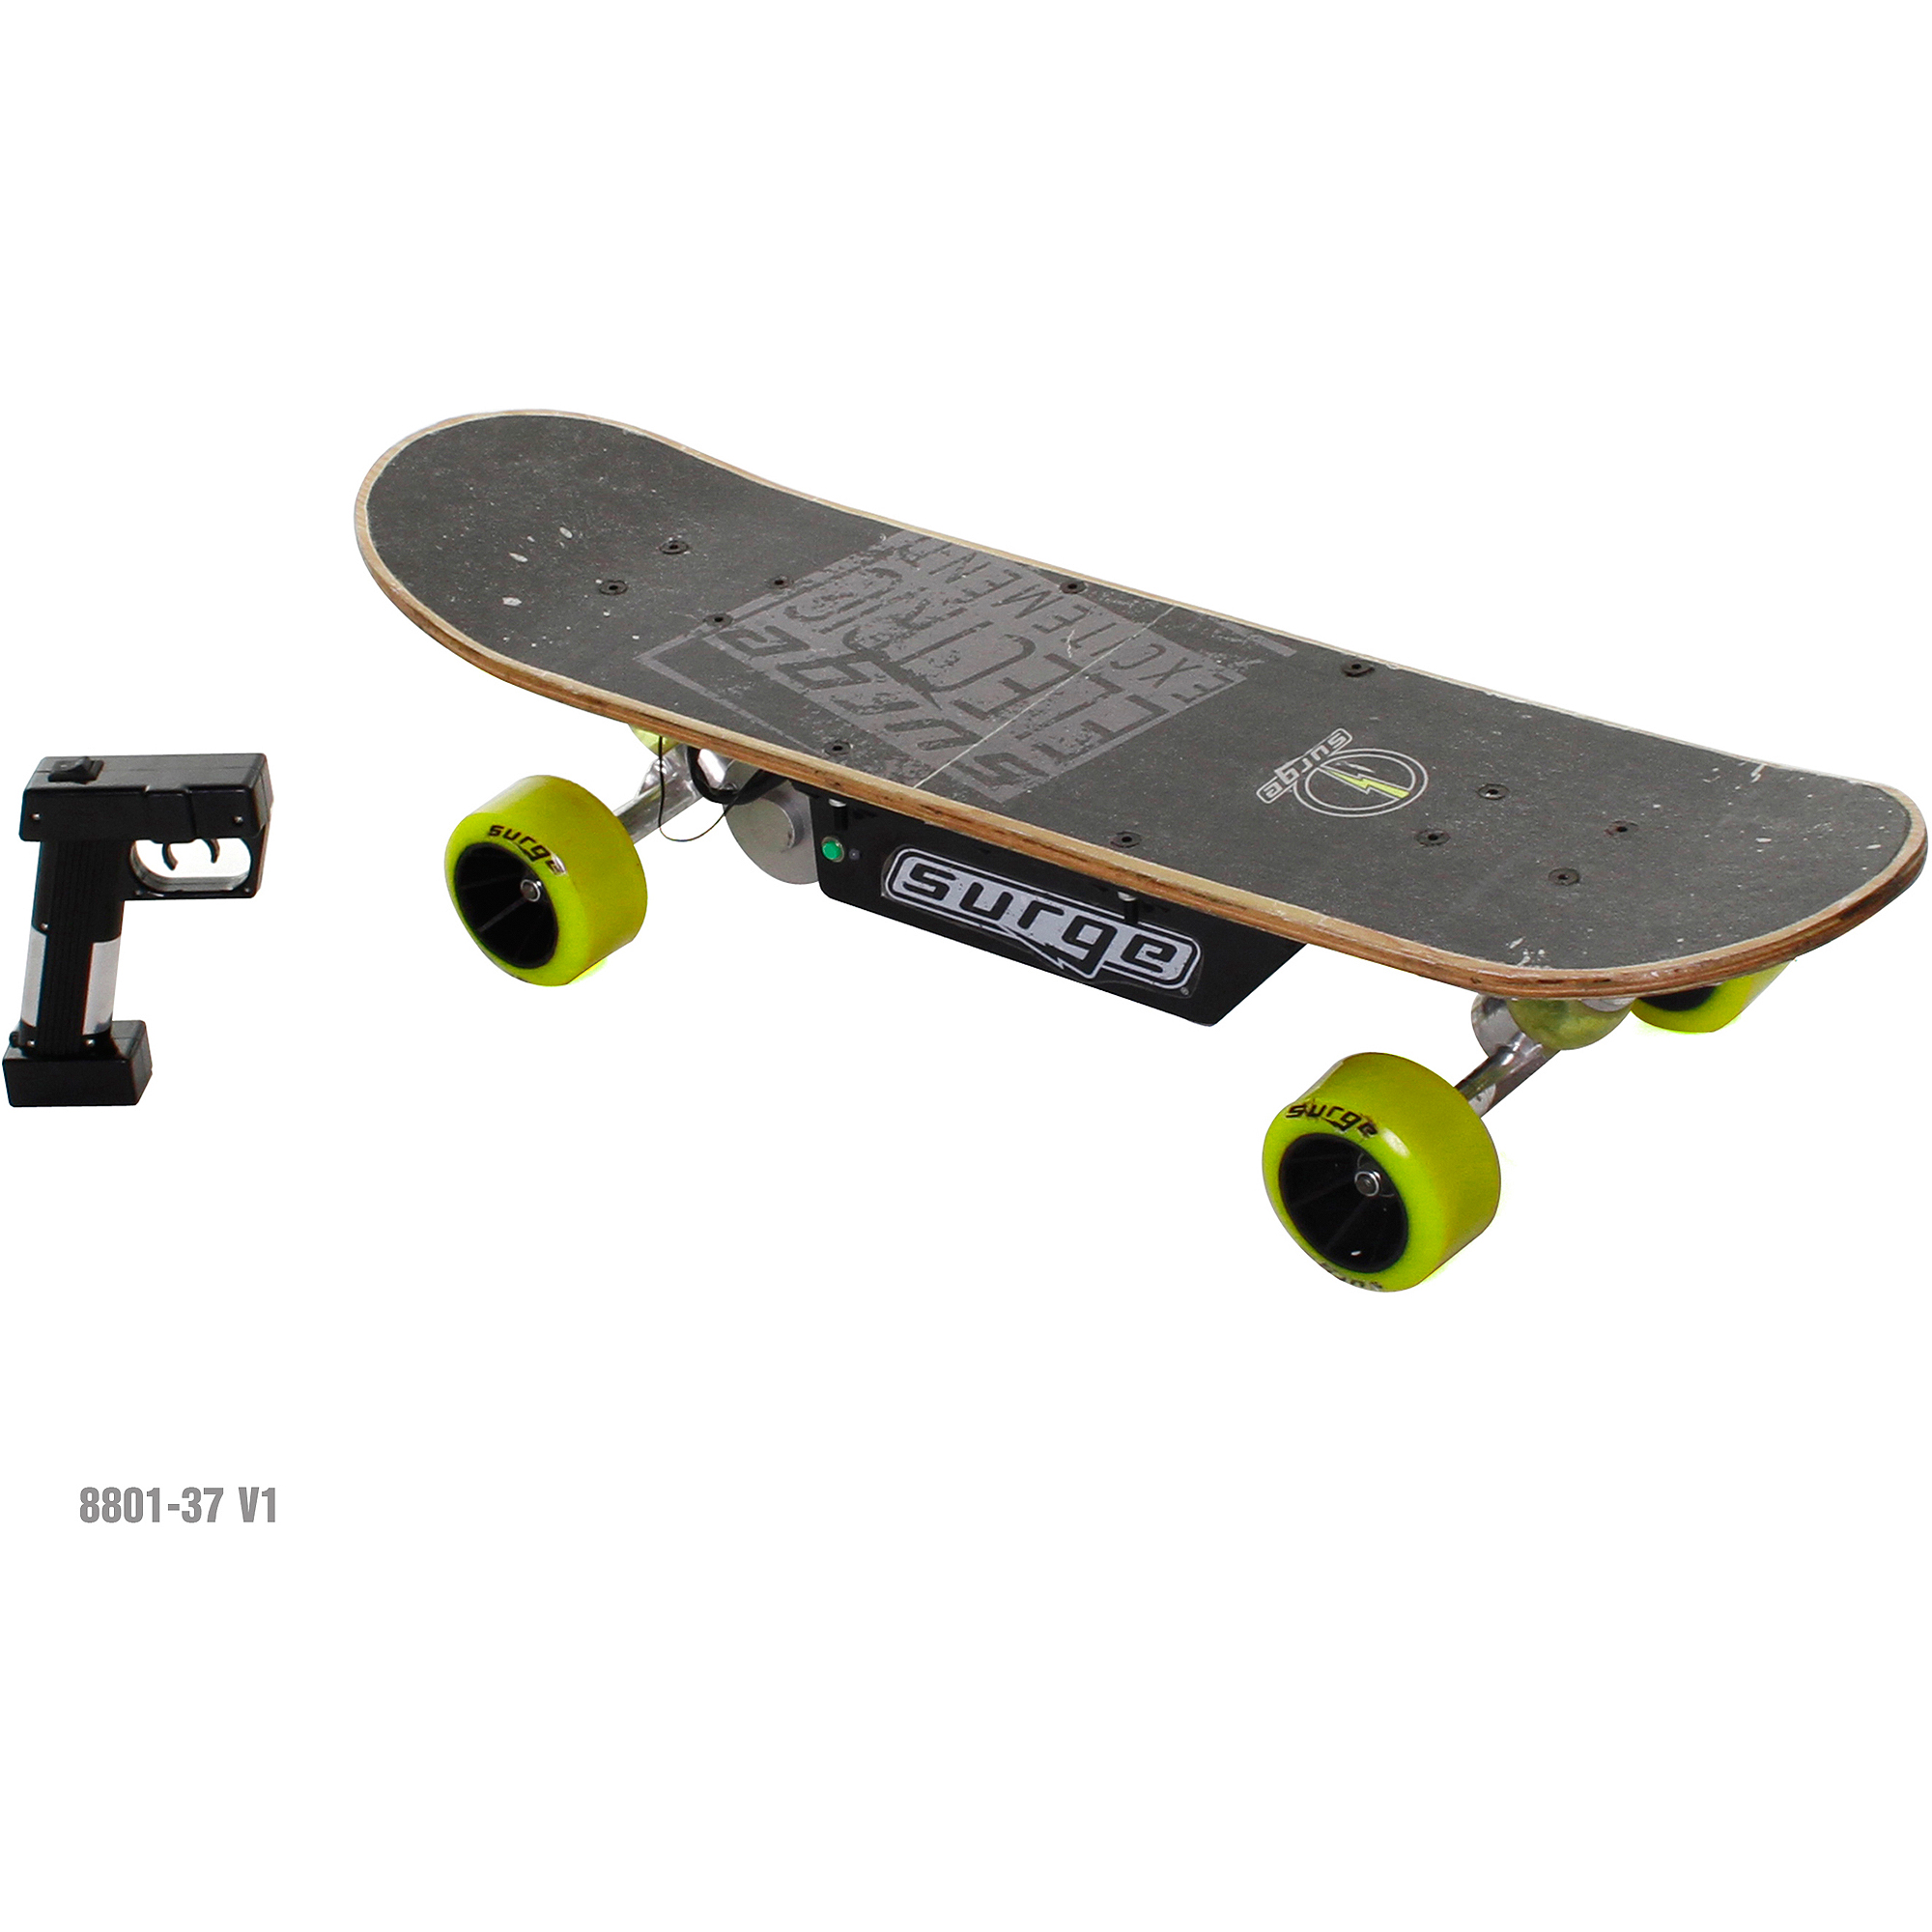 Surge Boys' 24V Electric Skateboard, Black by Dynacraft